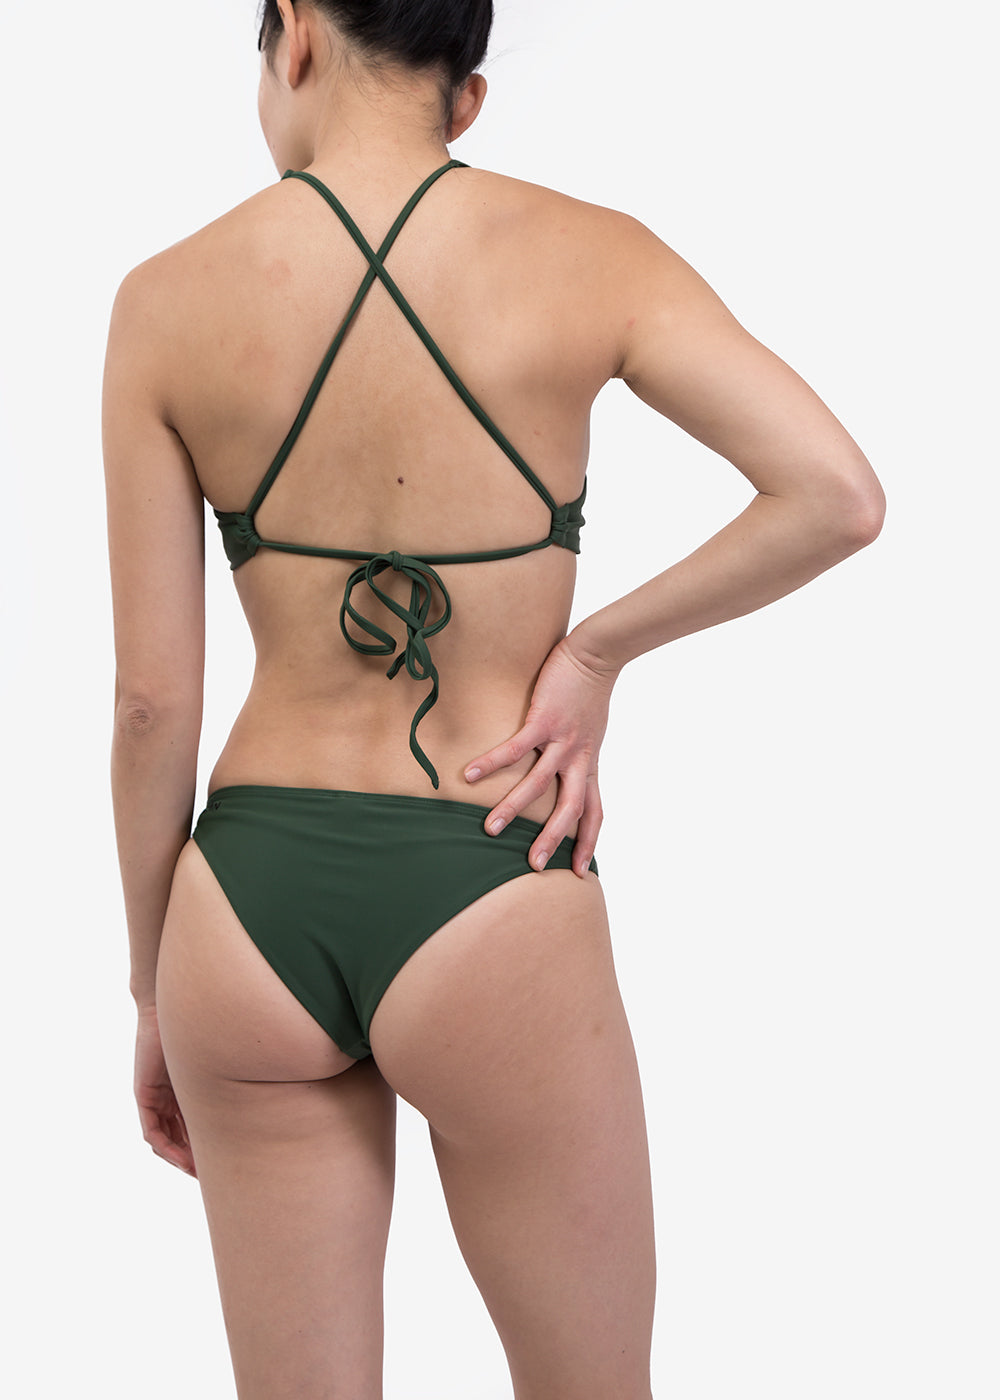 OCIN Olivine Halter Swim Top — Shop sustainable fashion and slow fashion at New Classics Studios